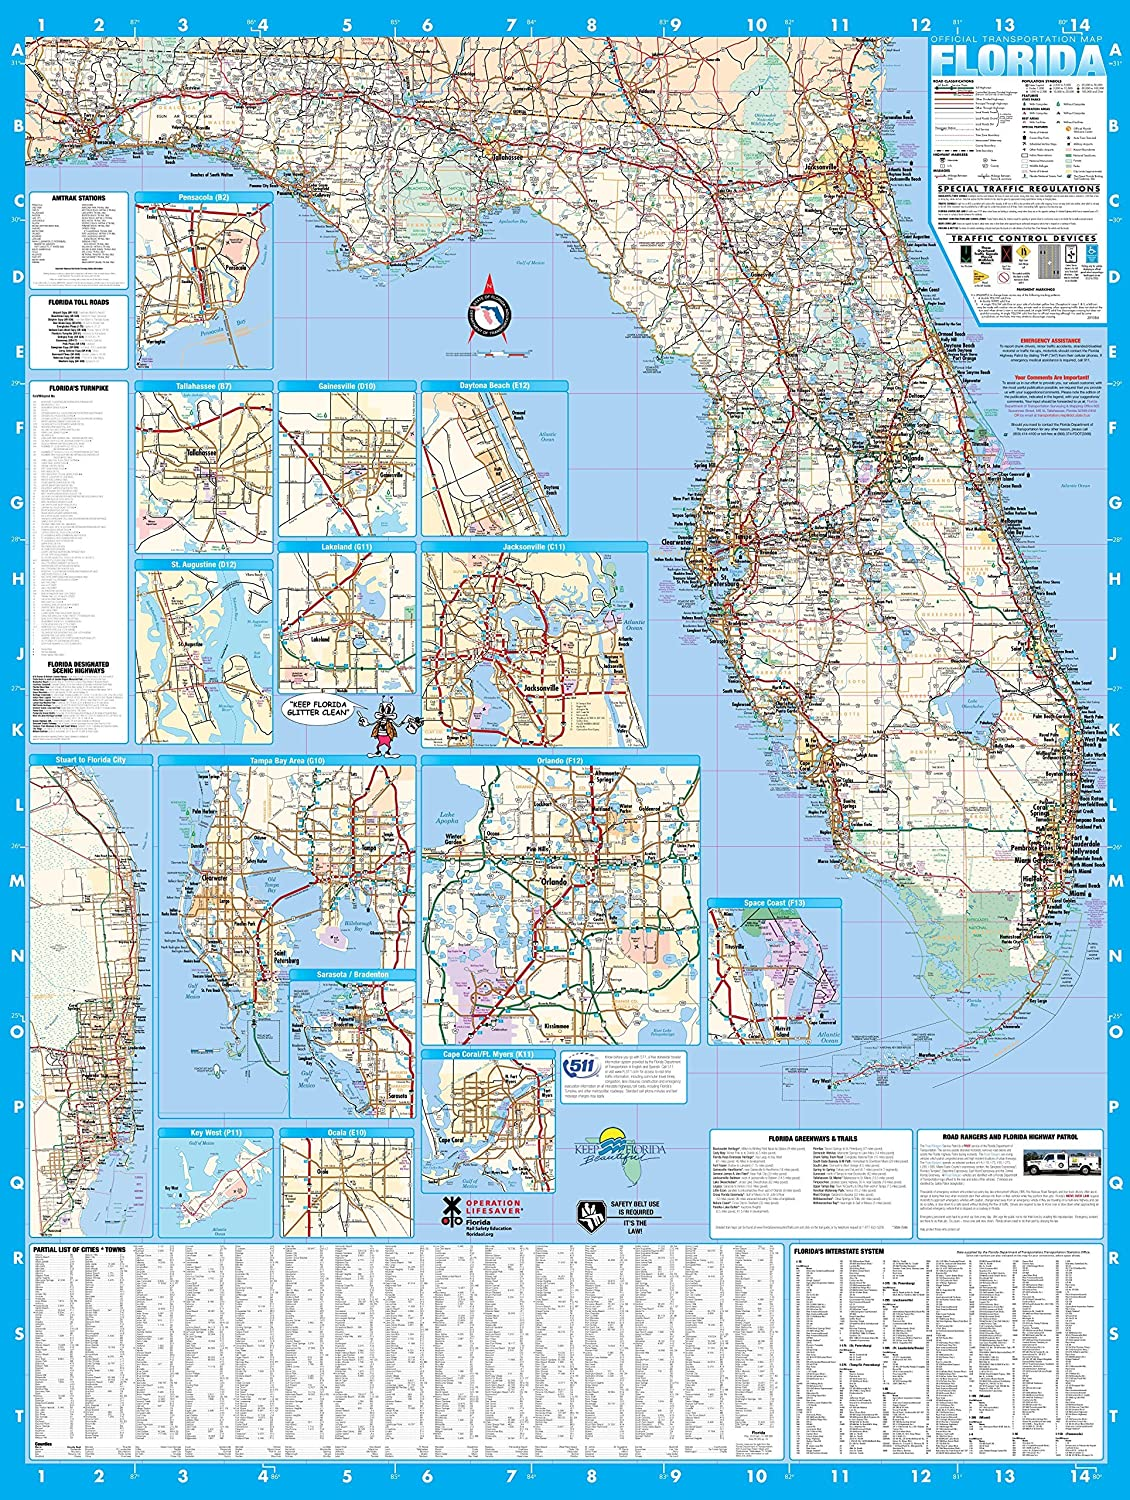 Florida Limited price State Laminated Wall low-pricing Map 48x64 Poster